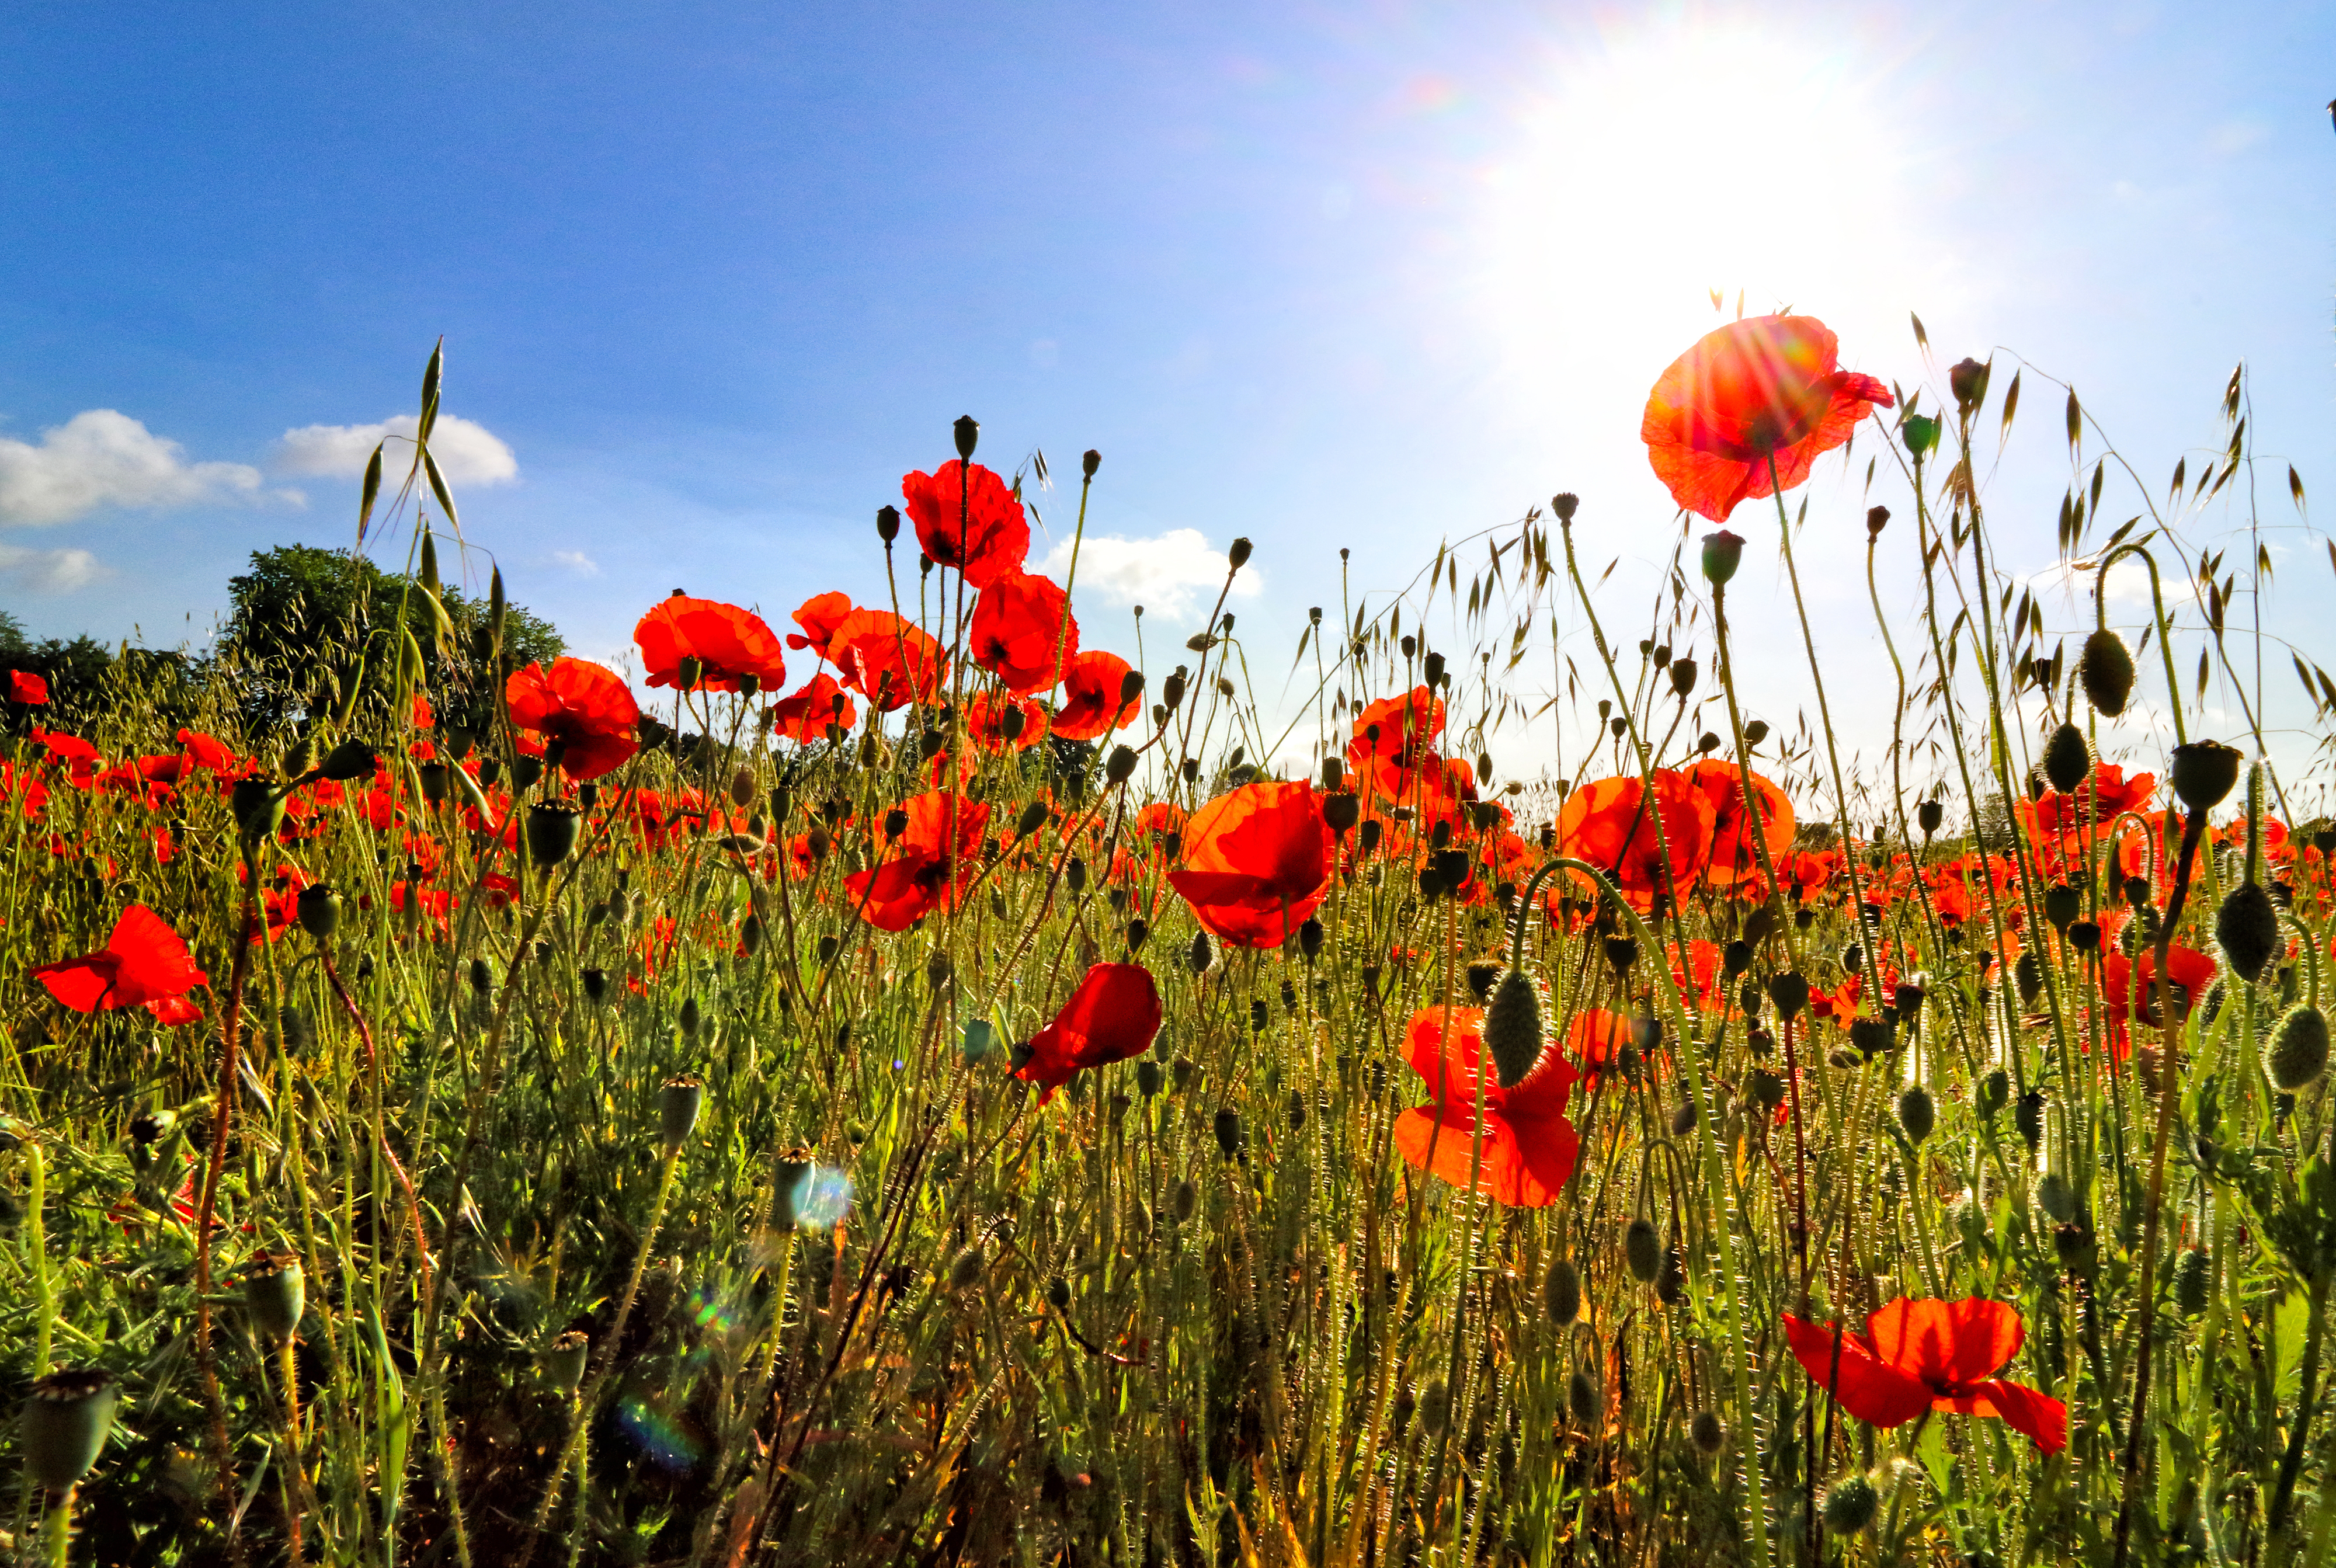 View of a field of poppies in the summer sunshine. (Photo by Keith Mayhew / SOPA Images/Sipa USA)